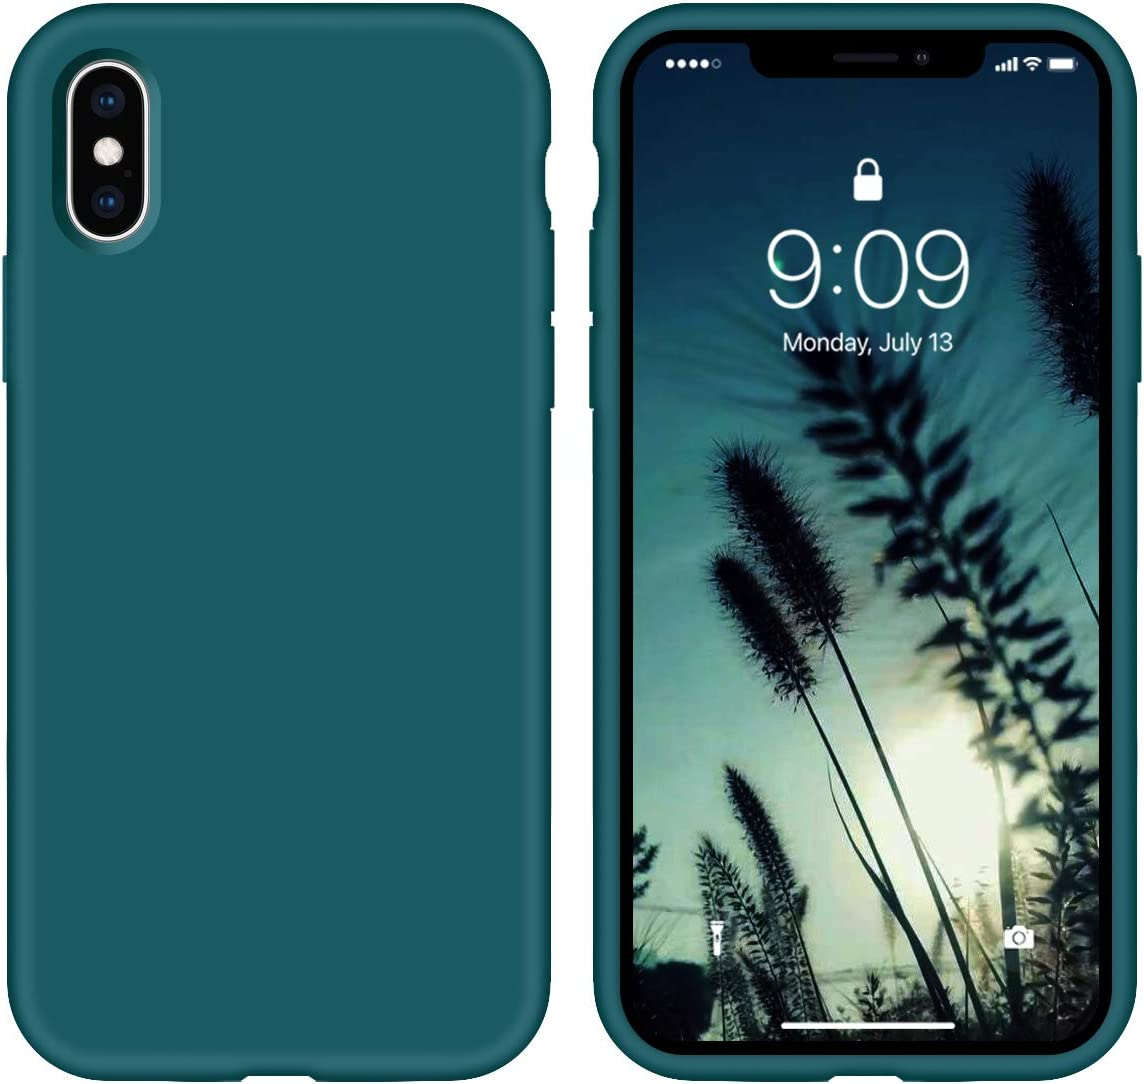 cillen Case for iPhone X Xs Silicone Liquid inch Baltimore Mall 5.8 Max 84% OFF Gel